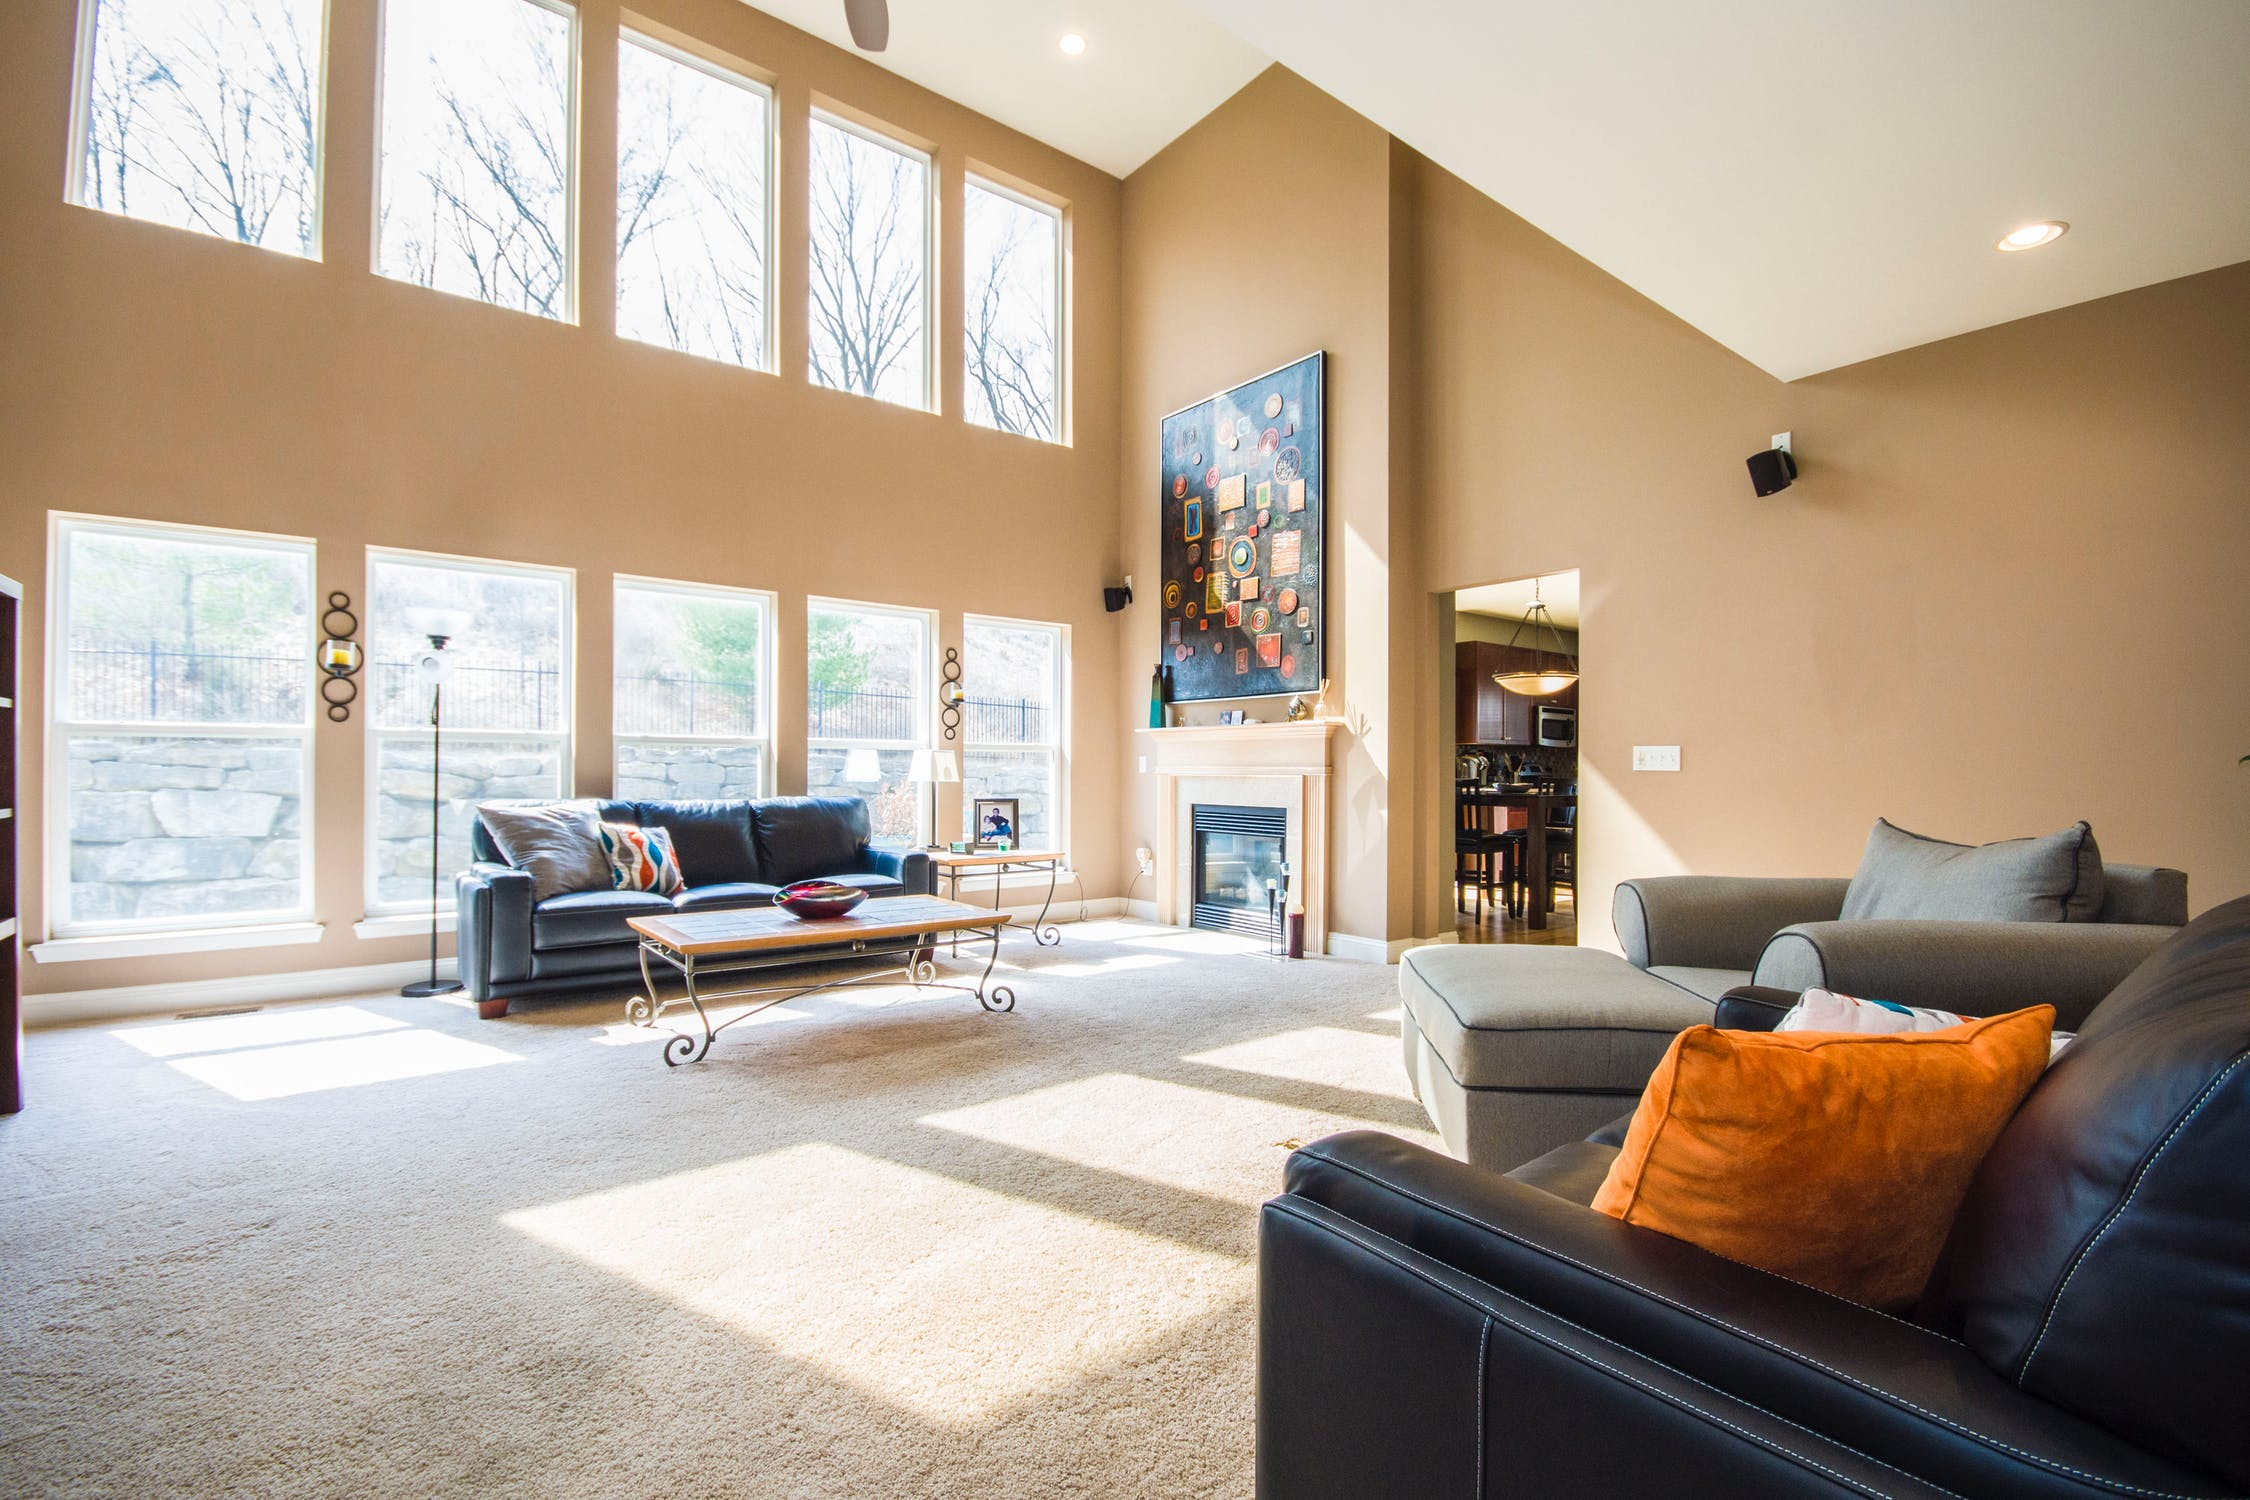 Summer Vs Winter: How to Treat Your Home's Heating System in Different Seasons